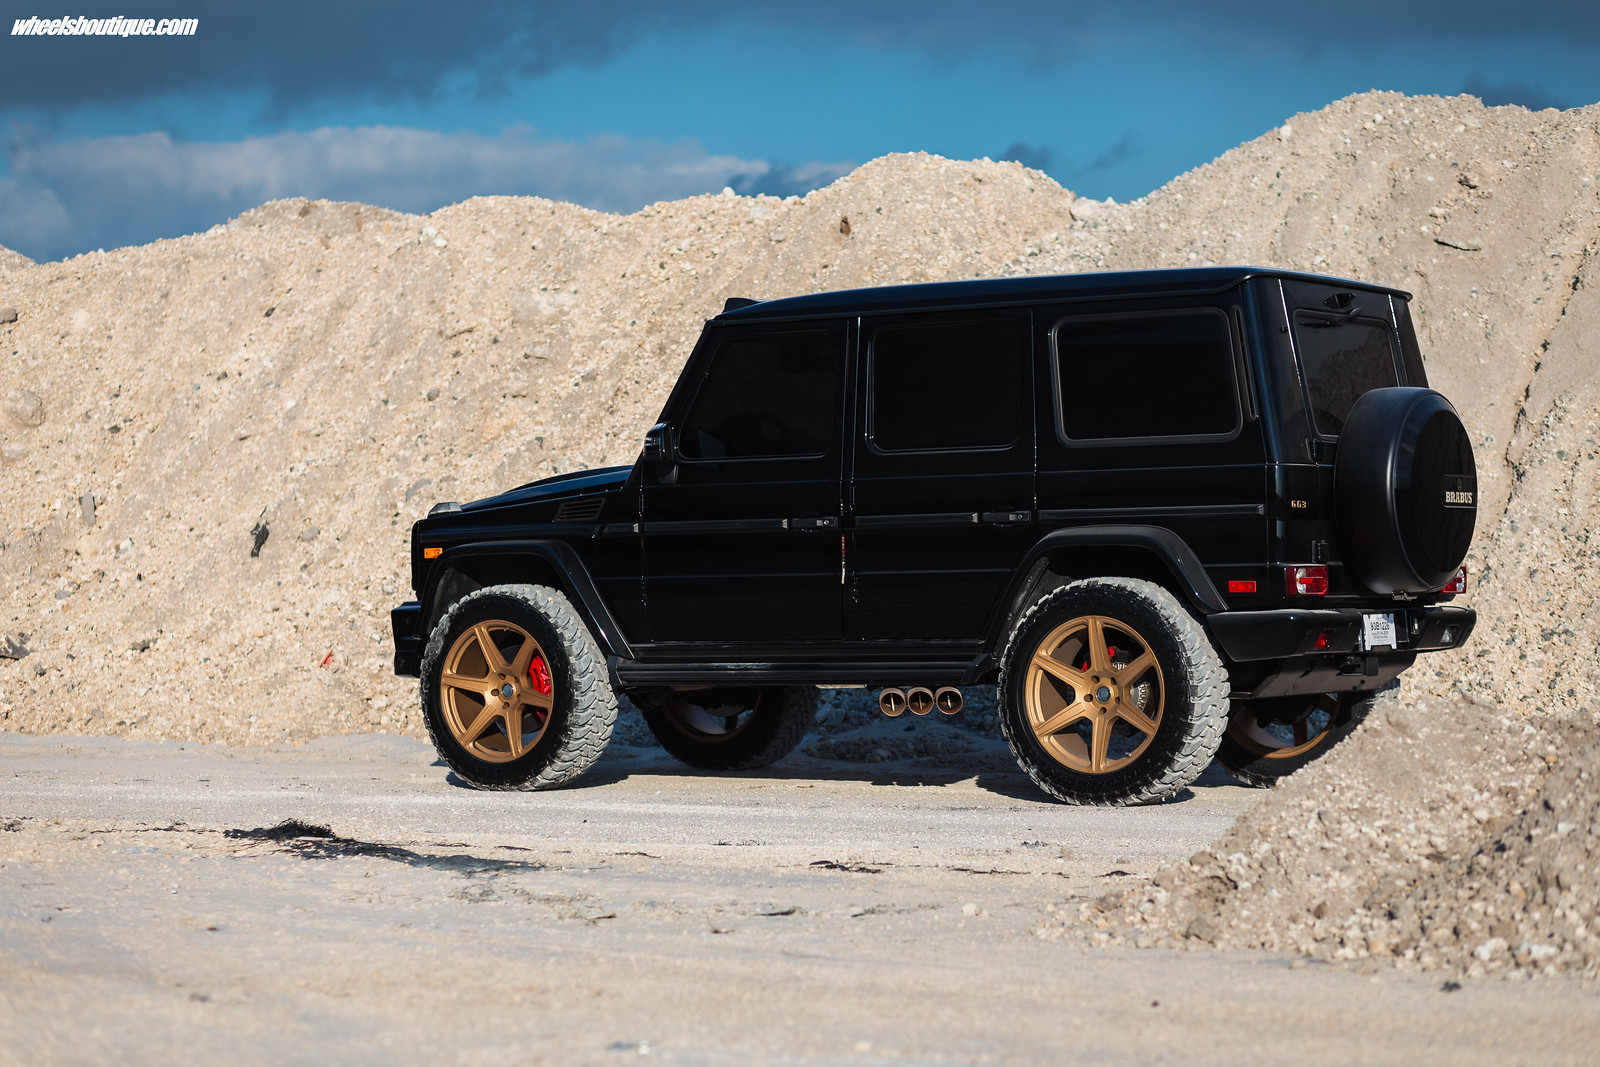 Satin Nussbaum The Brabus Brawler - Another Lifted Mercedes G63 By Teamwb